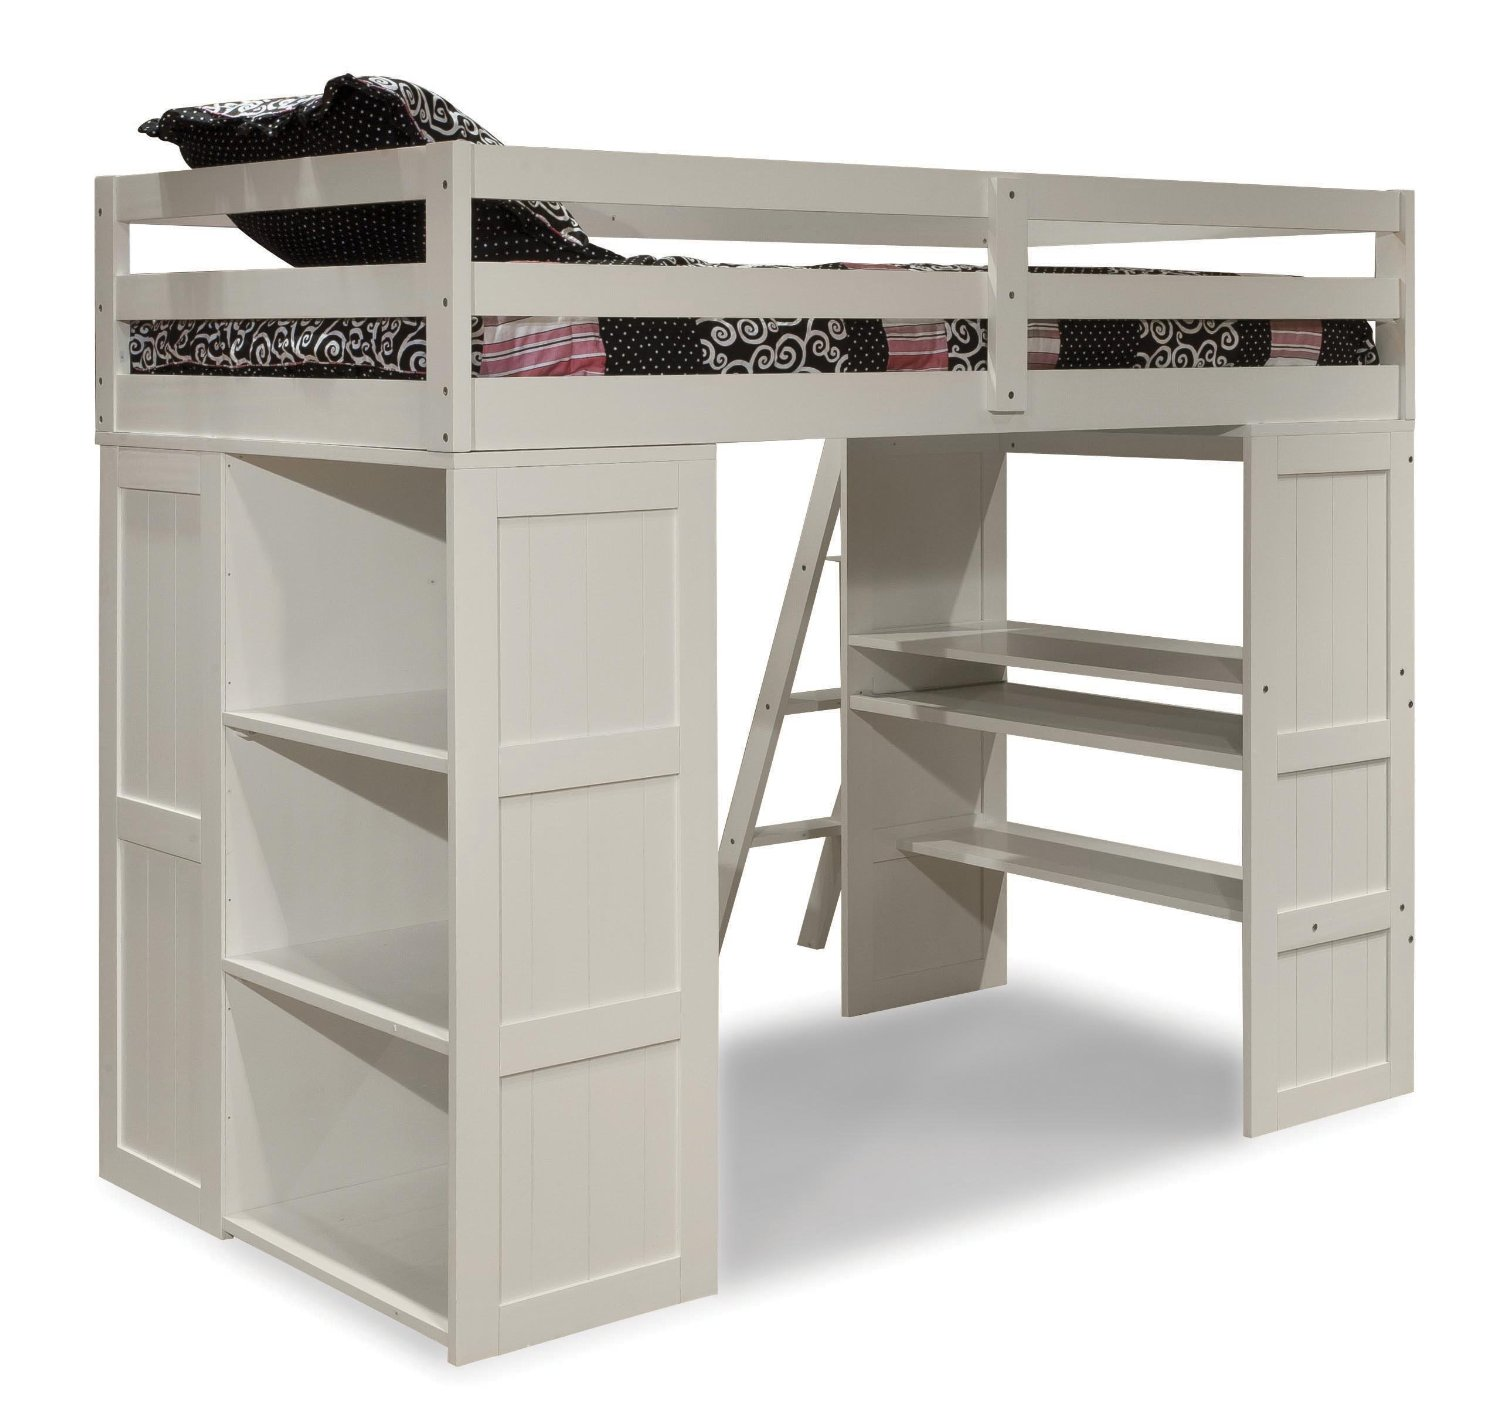 hersheyler twin desk ideas underneath with loft bed metal bunk for look a